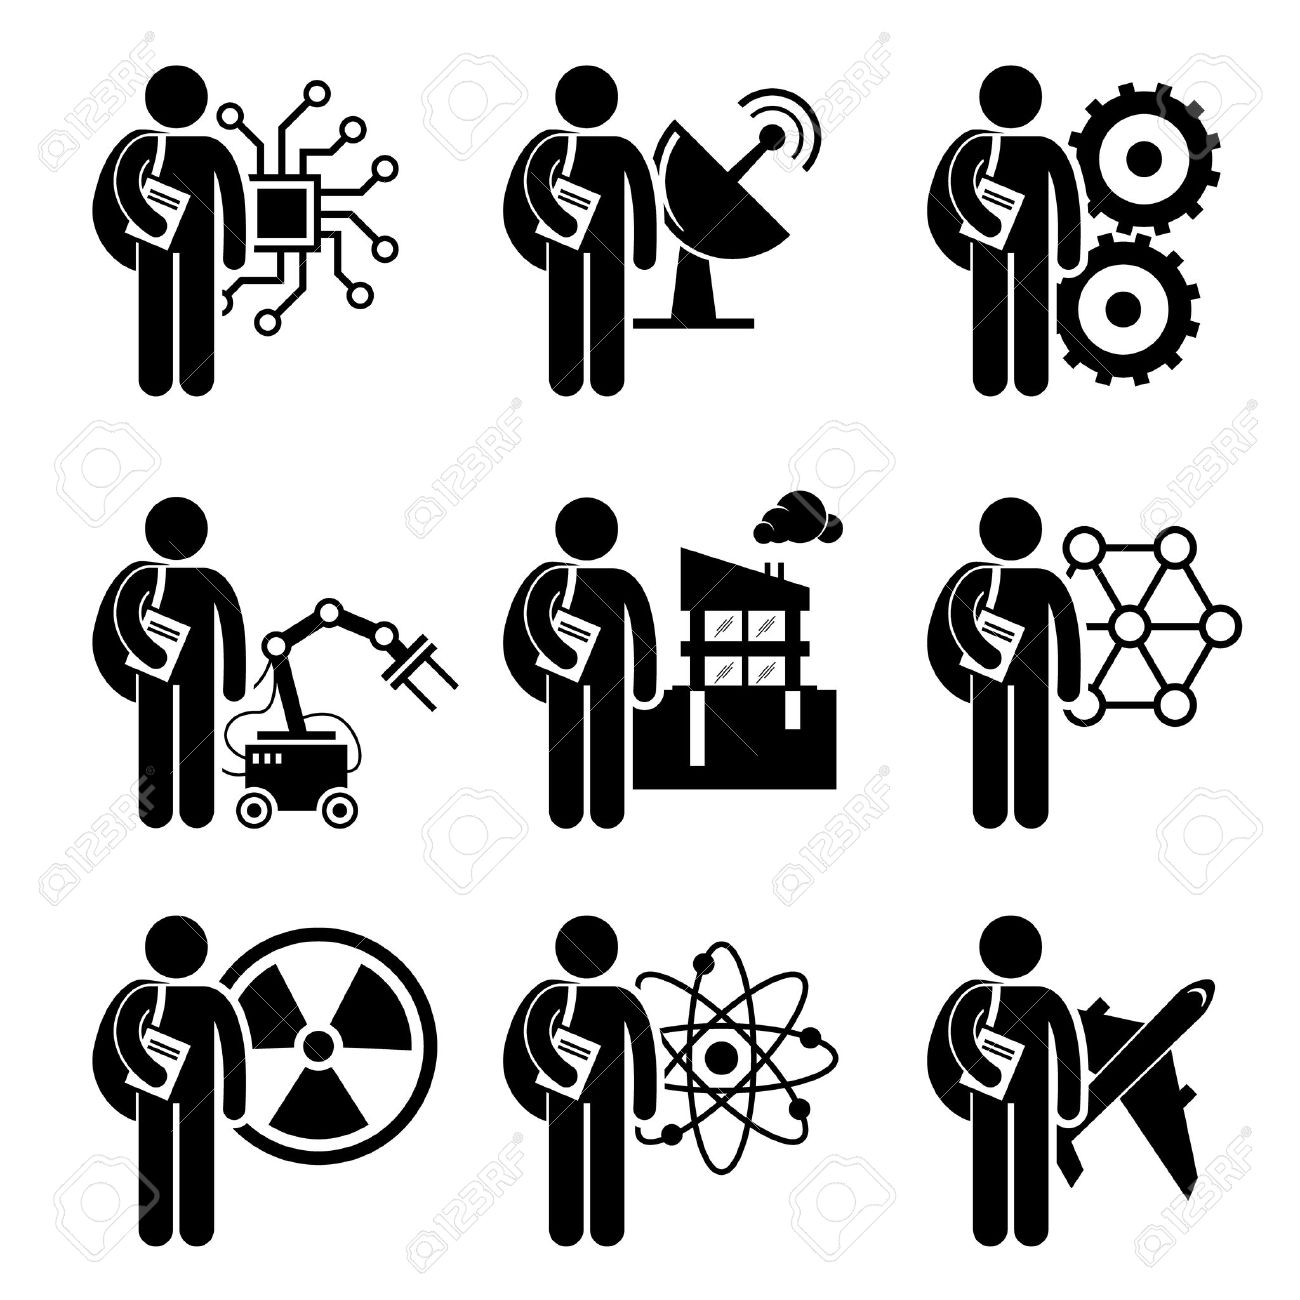 Electrical engineering clipart - Clipground